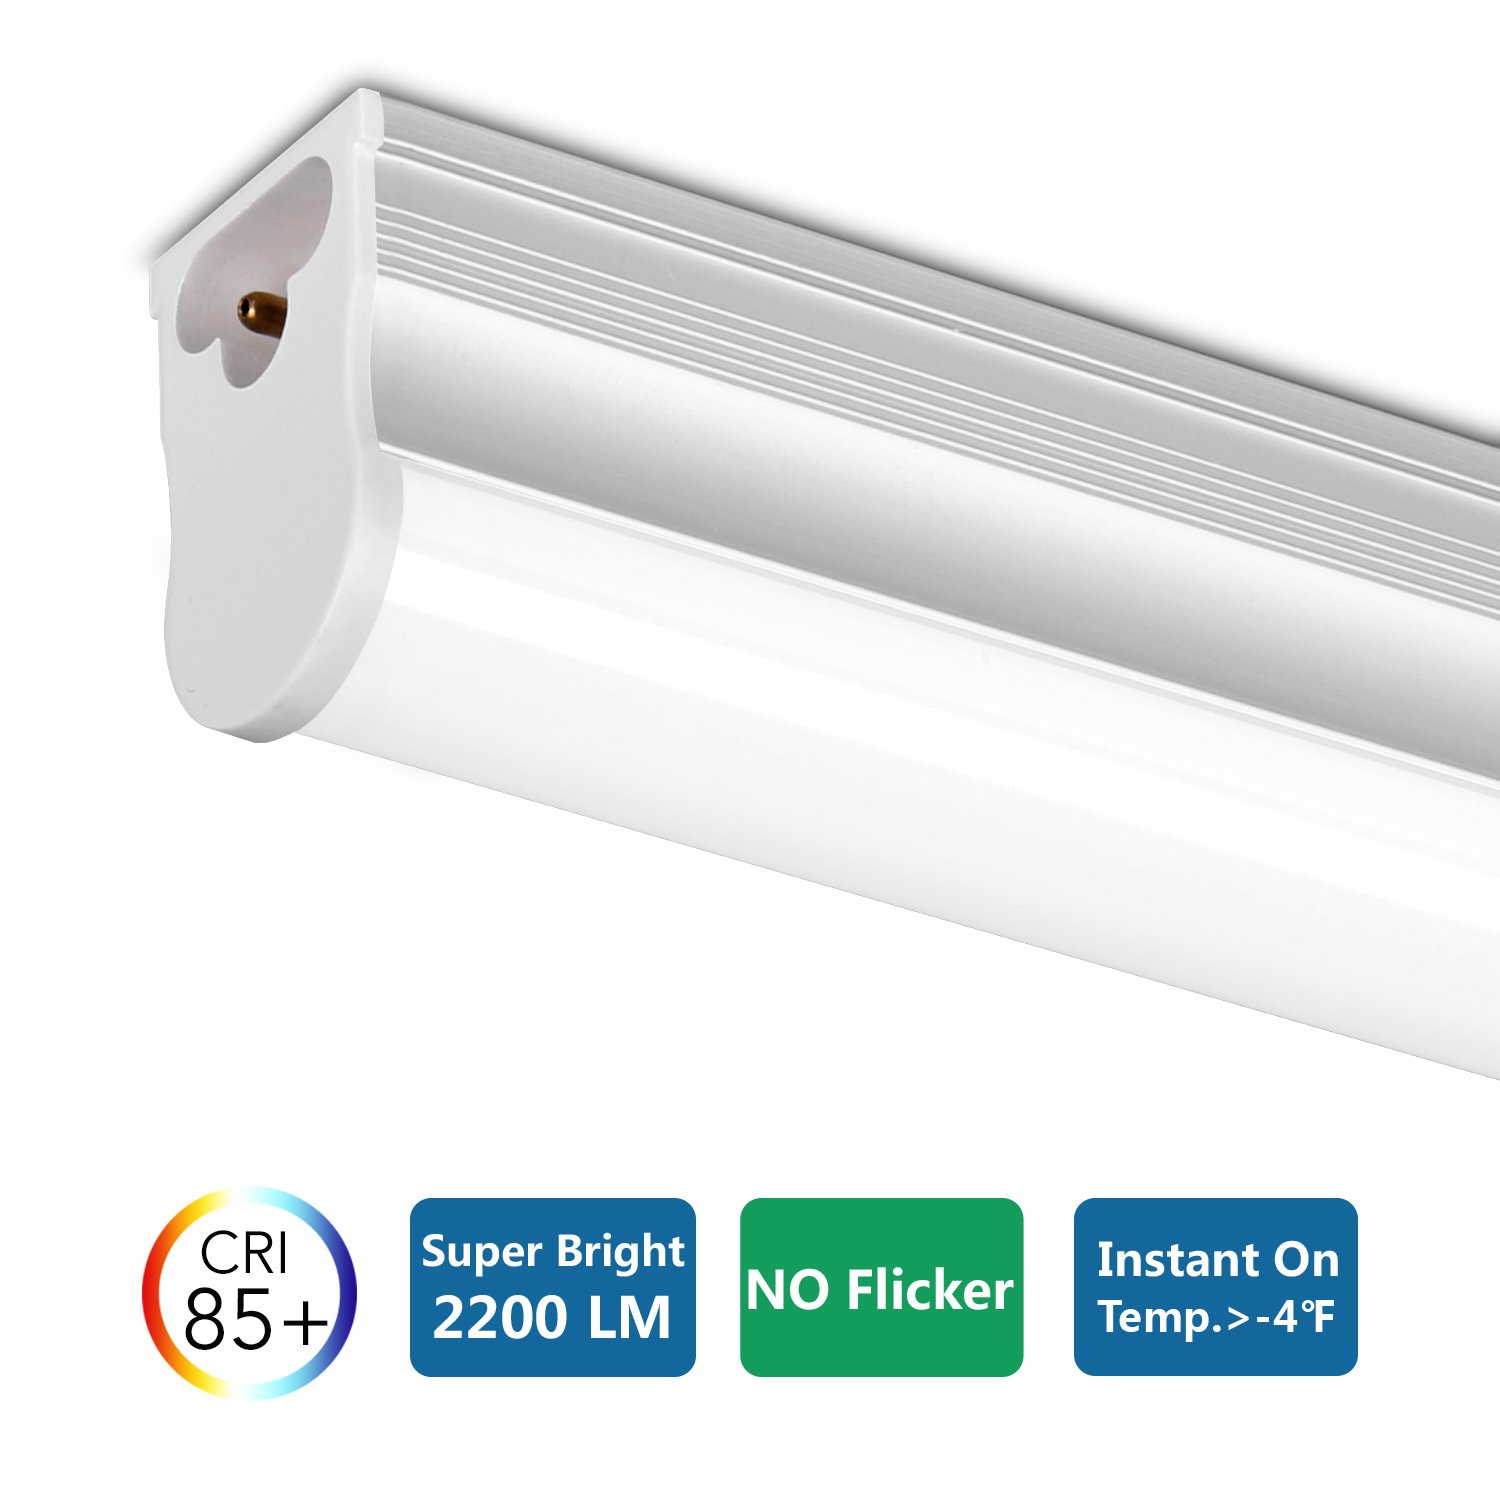 FrenchMay LED T5 mini utility linkable shop light 4ft, 22W, 85CRI, 2200Lumens, 5000K, 32w Fluorescent Equivalent, integrated ceiling light & under Cabinet shop light for garage, workshop, basement by FrenchMay (Image #7)